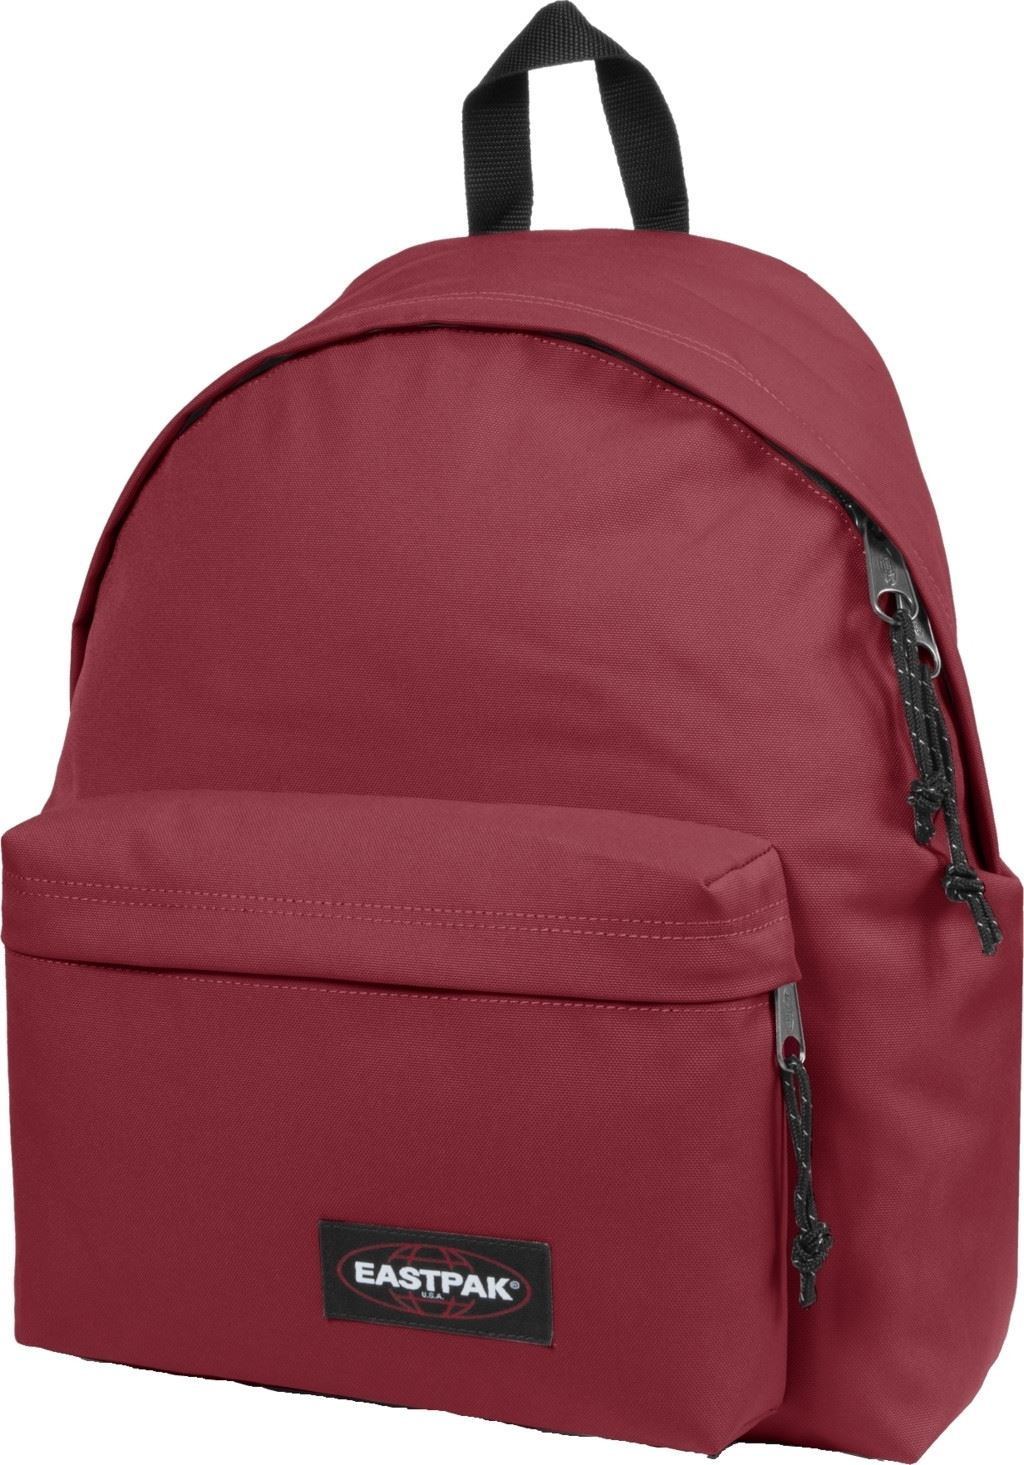 eastpak padded pak 39 r backpack rucksack bag black red blue grey denim ebay. Black Bedroom Furniture Sets. Home Design Ideas